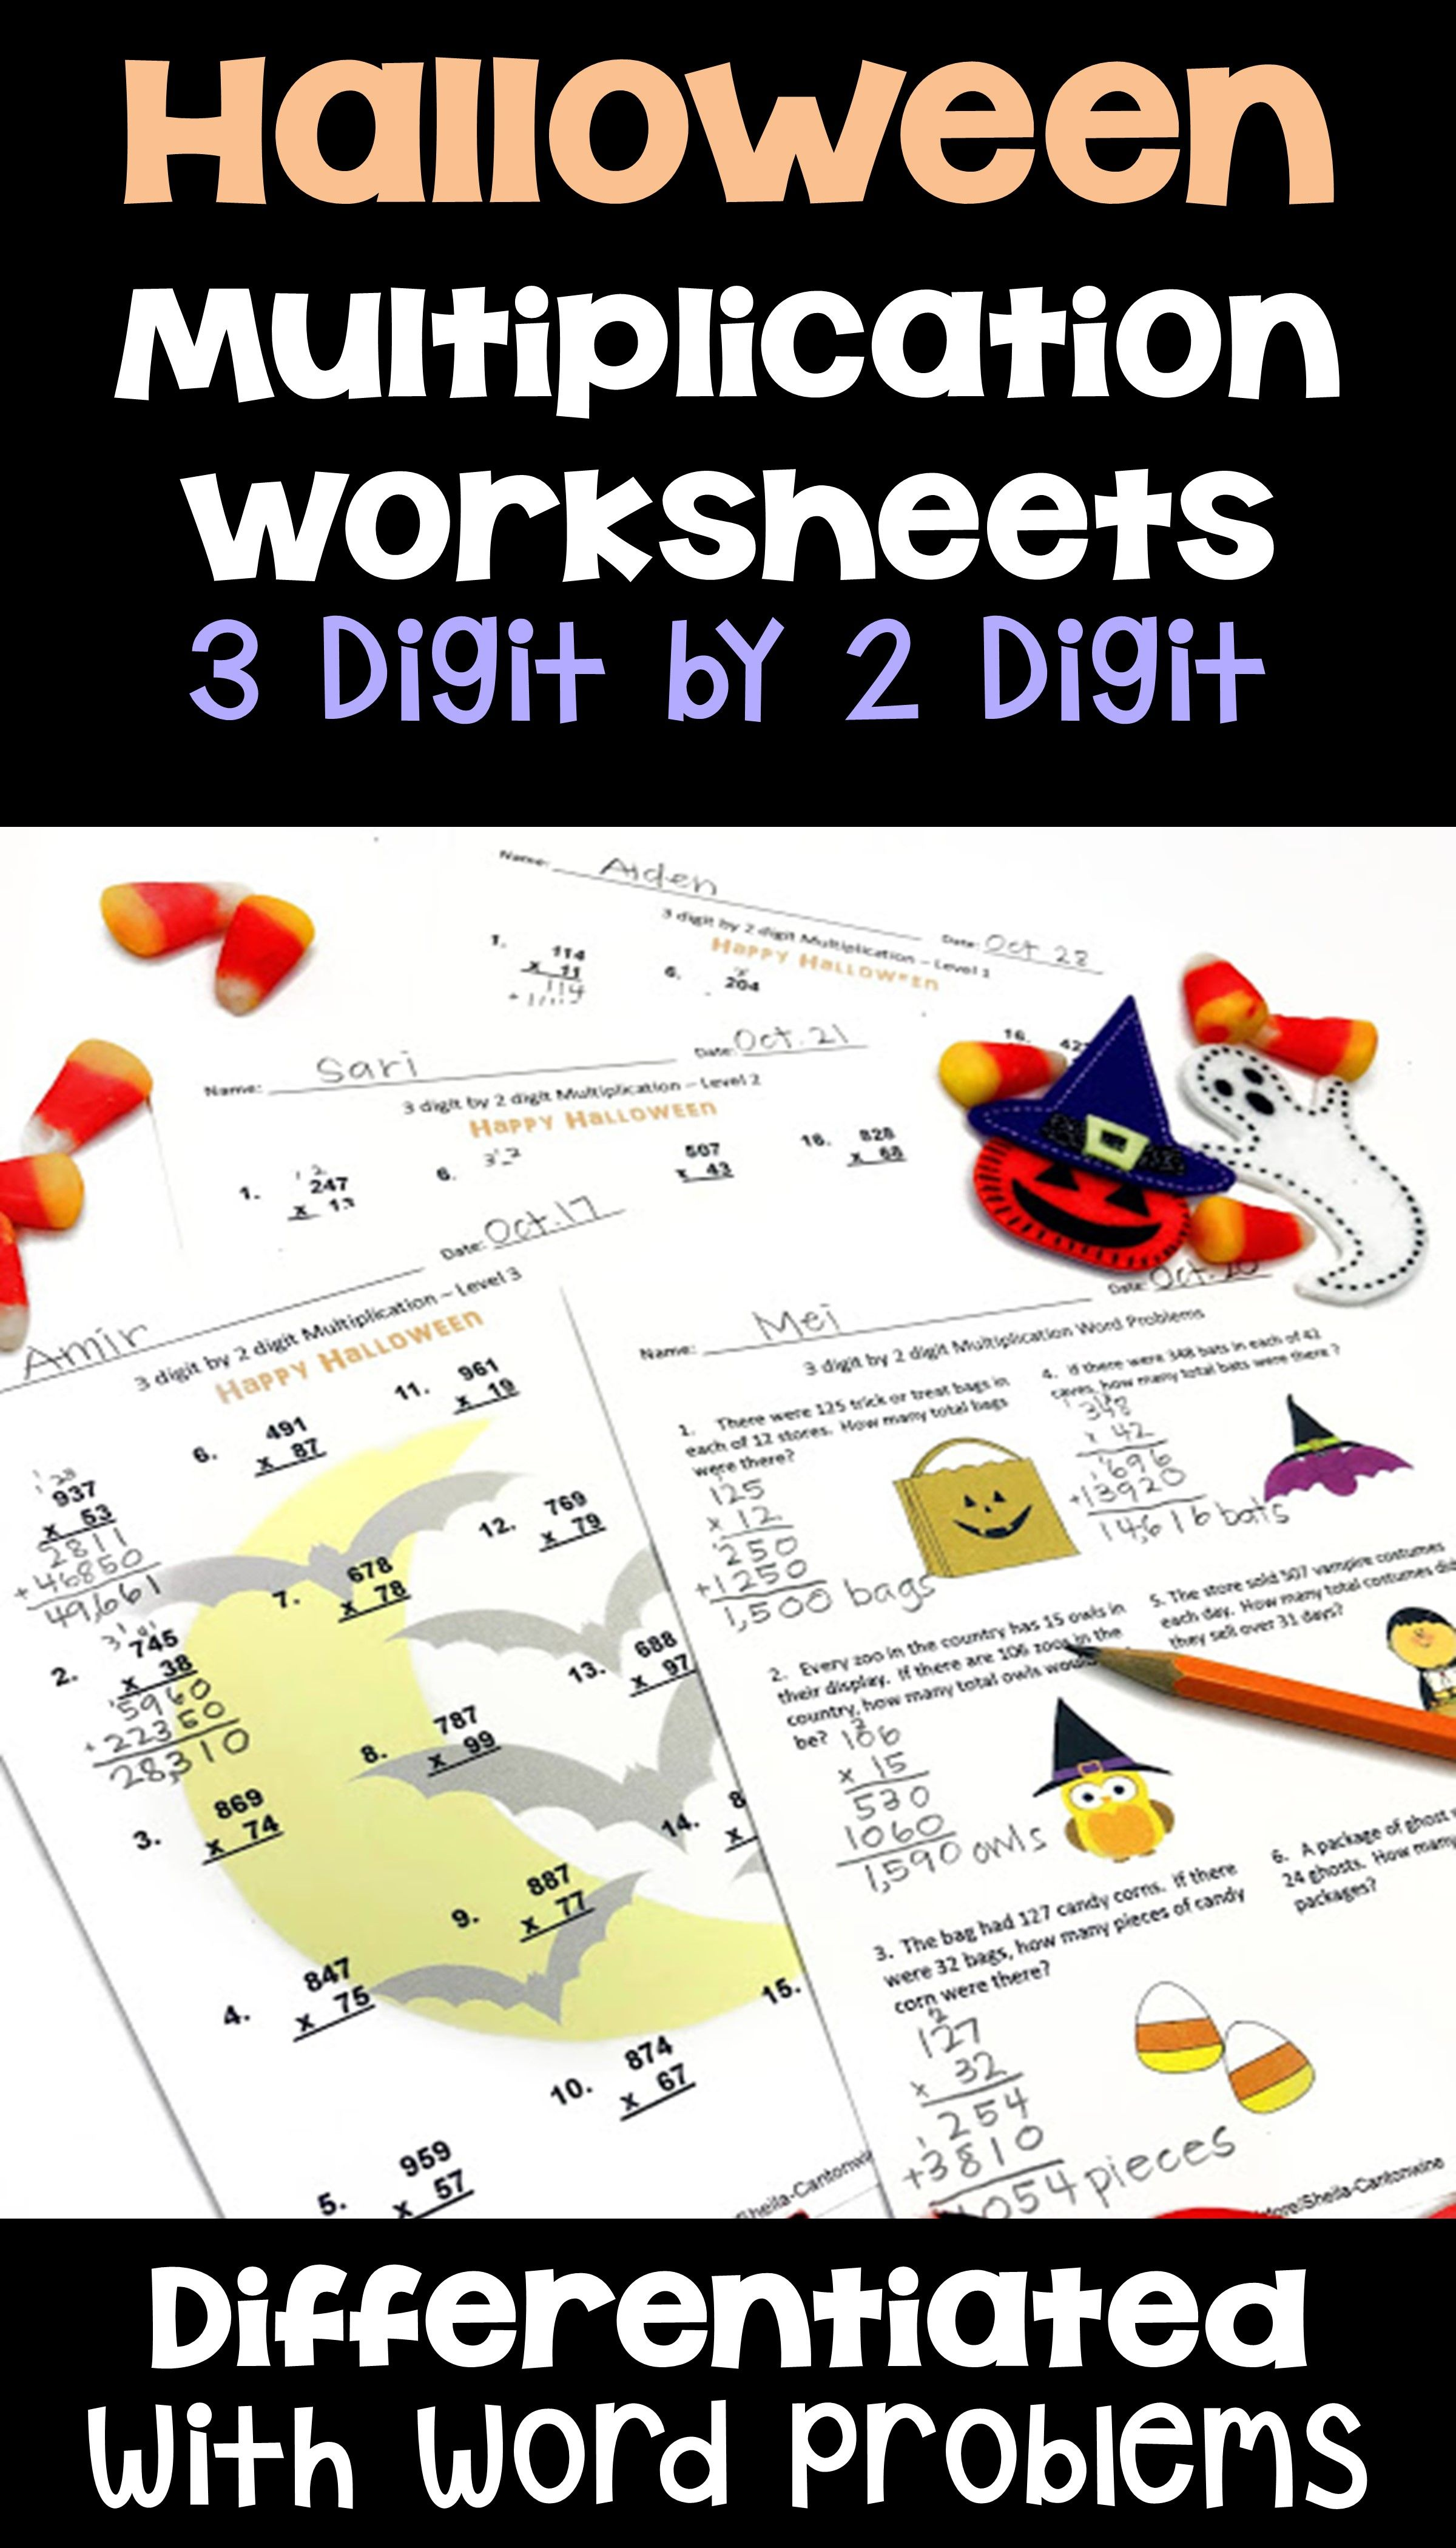 Halloween Math 3 Digit By 2 Digit Multiplication